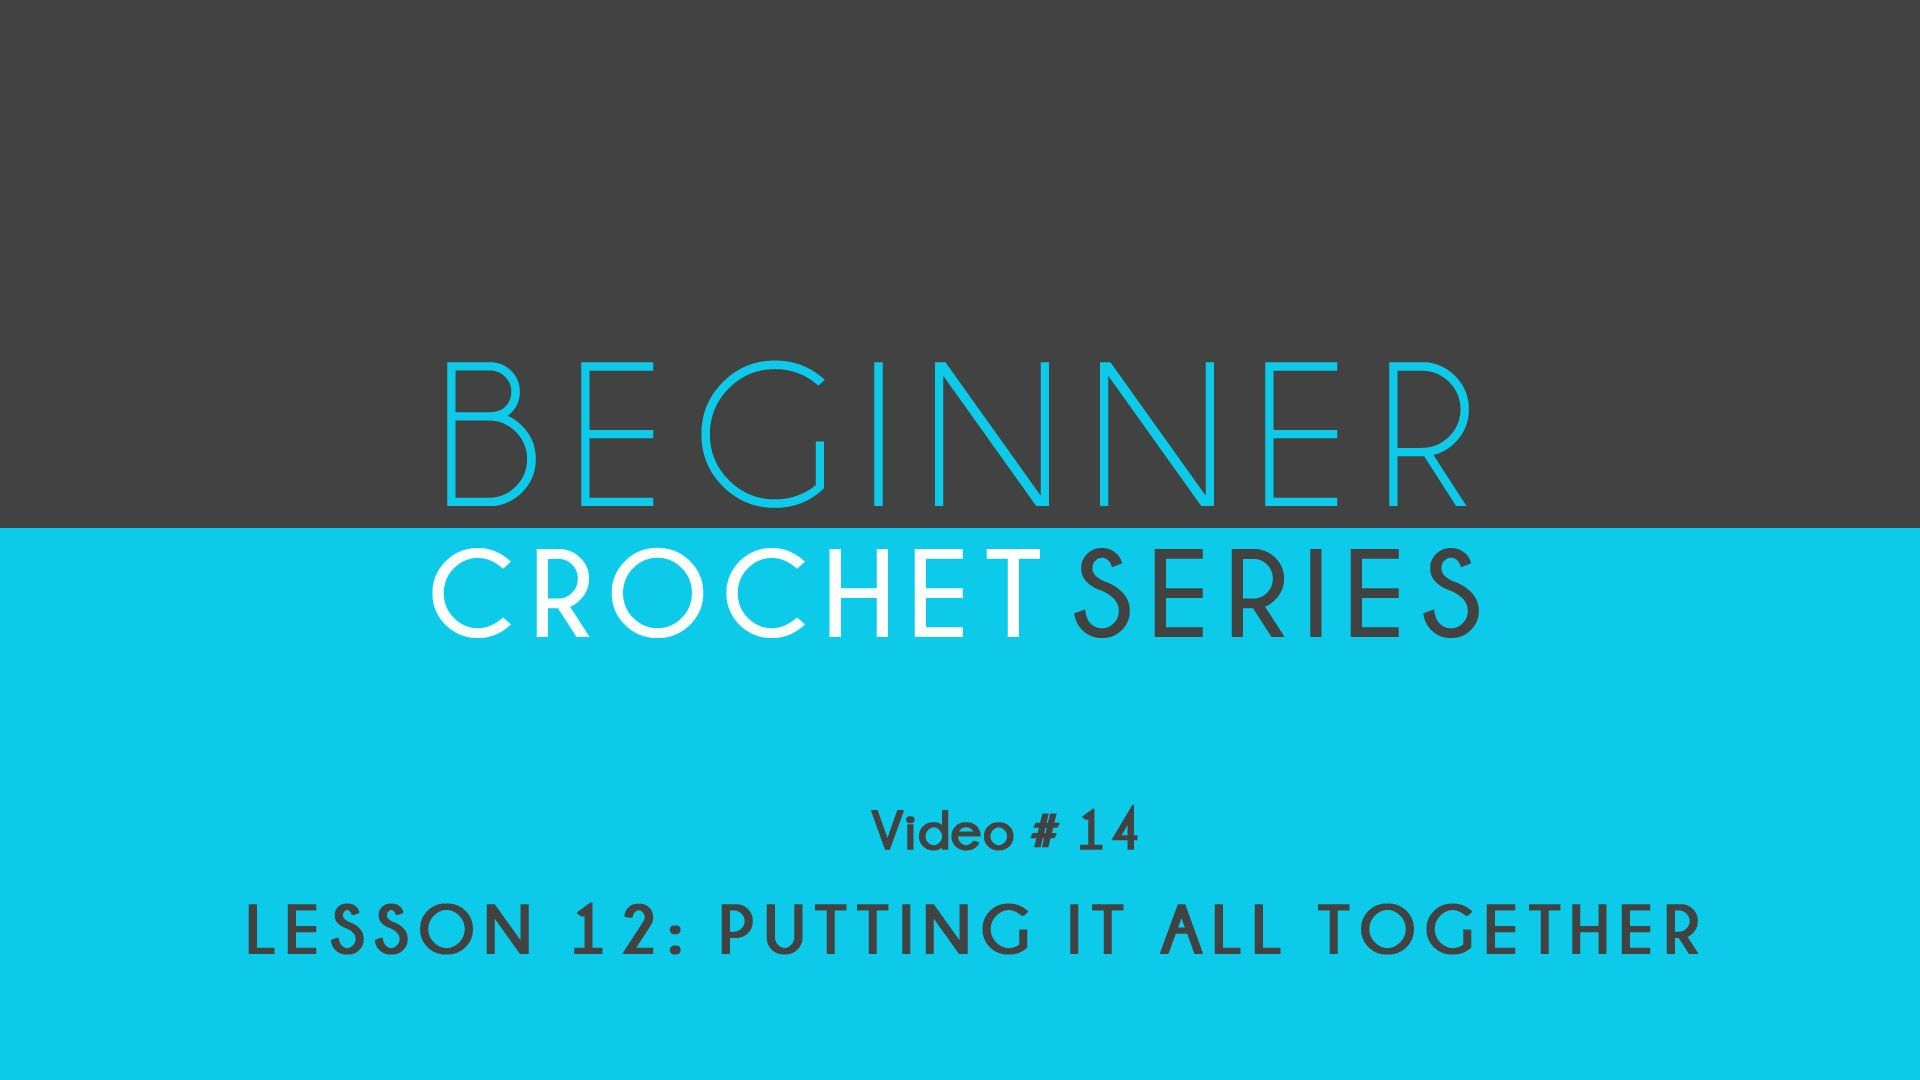 How to Crochet: Beginner Crochet Series Lesson 12 Putting It All Together